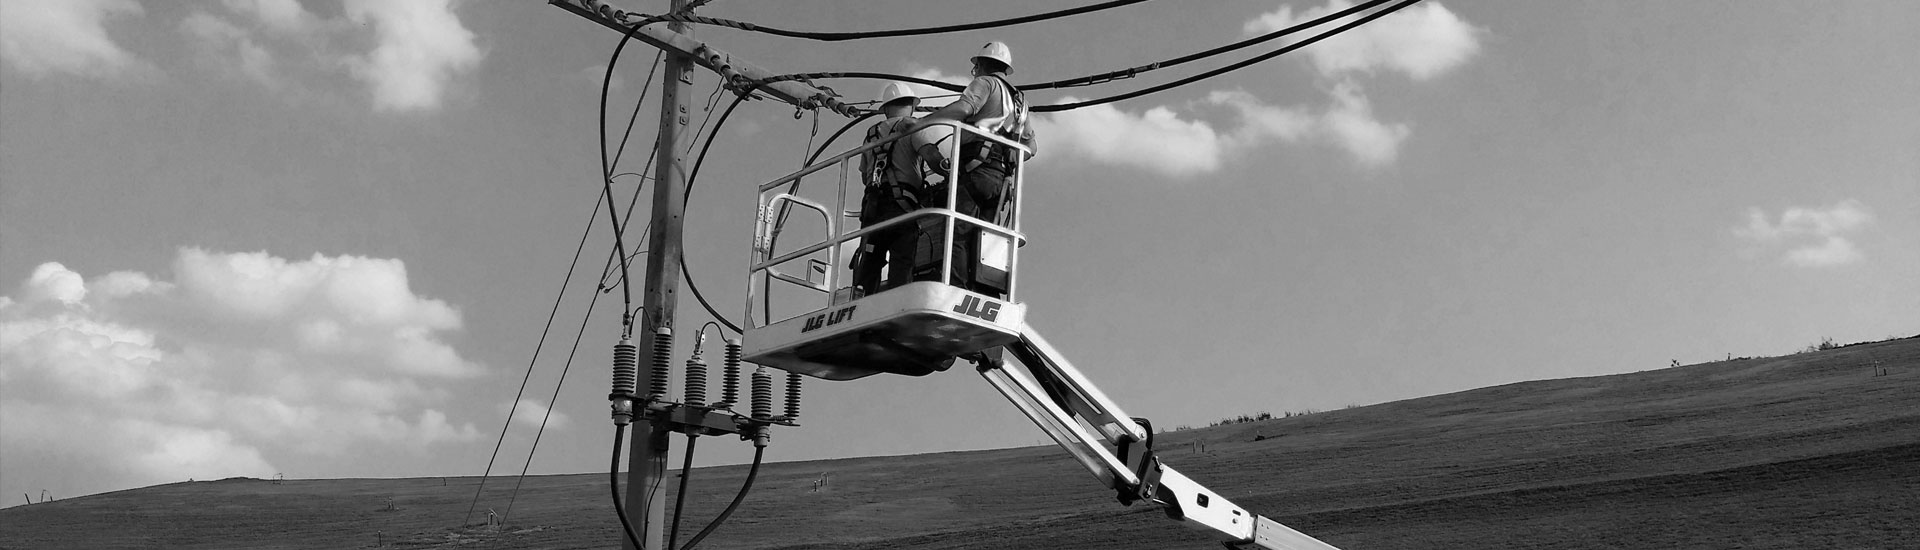 afcs-power-lines-bw